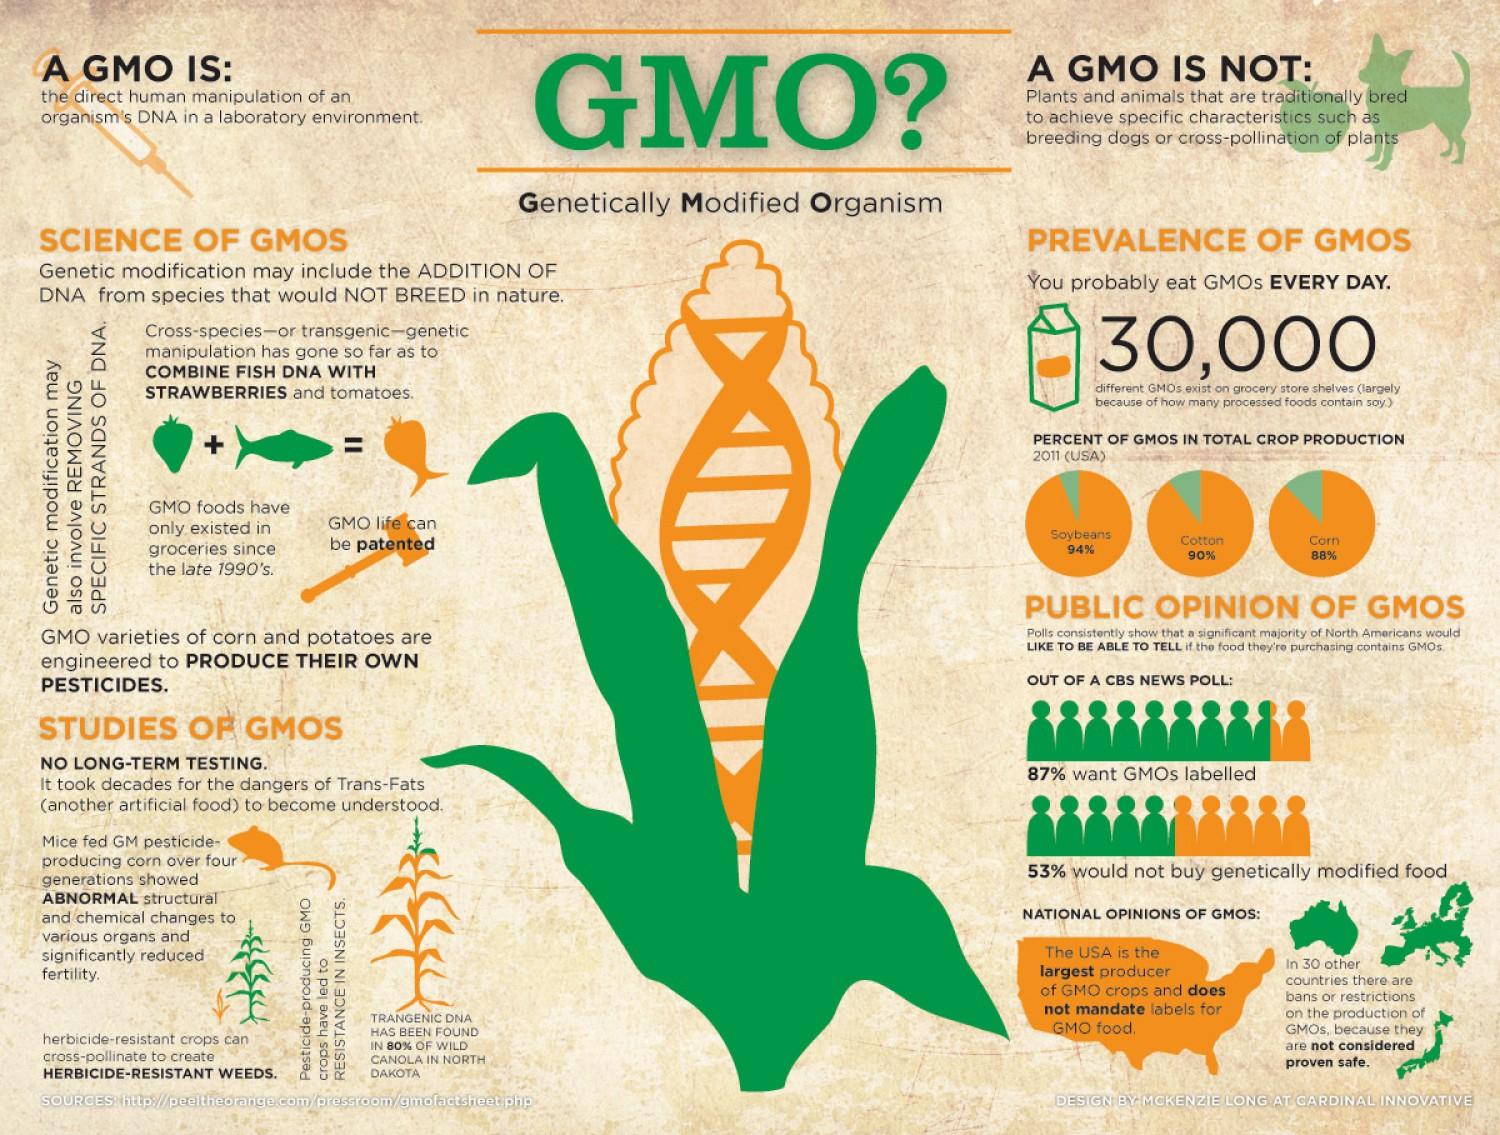 gmo-genetically-modified-organism_50290d5e92a11_w1500.jpg